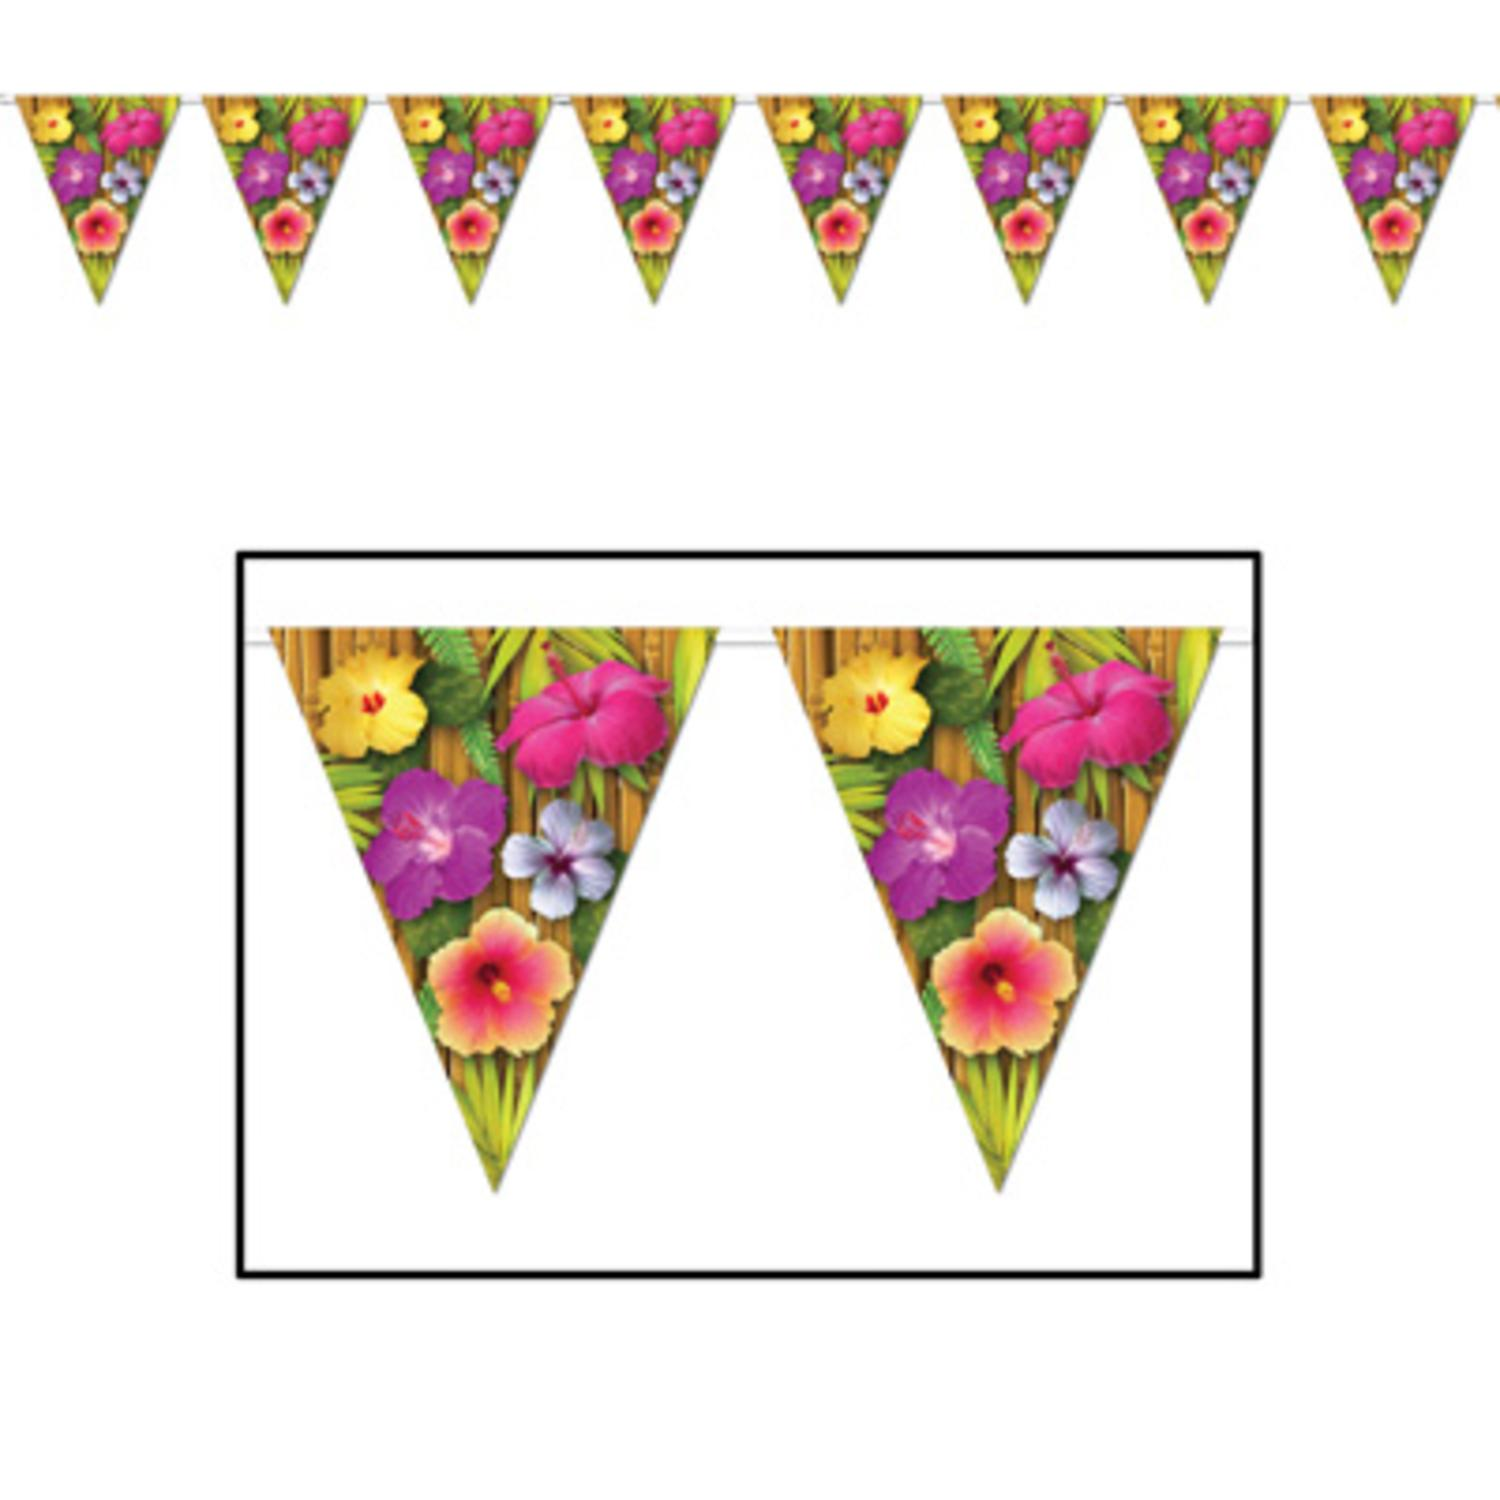 Pack of 12 Colorful Hawaiian Tropical Flower Luau Party Decoration Pennant Banners 12'